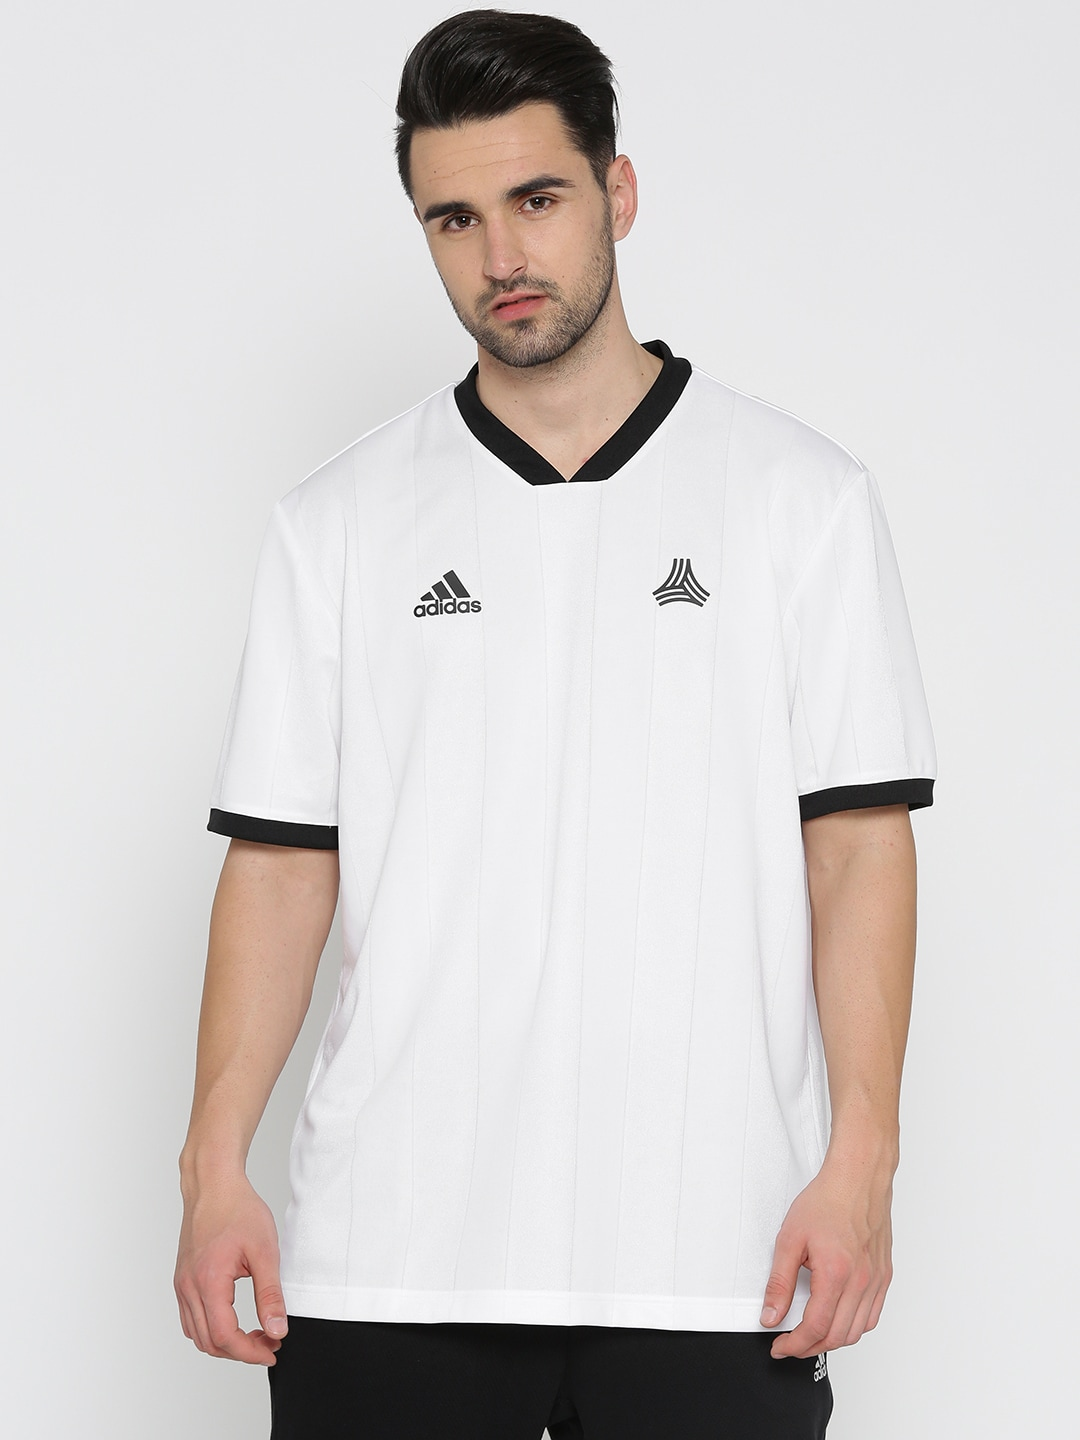 online store 06d29 6a6bb Adidas T-Shirts - Buy Adidas Tshirts Online in India   Myntra